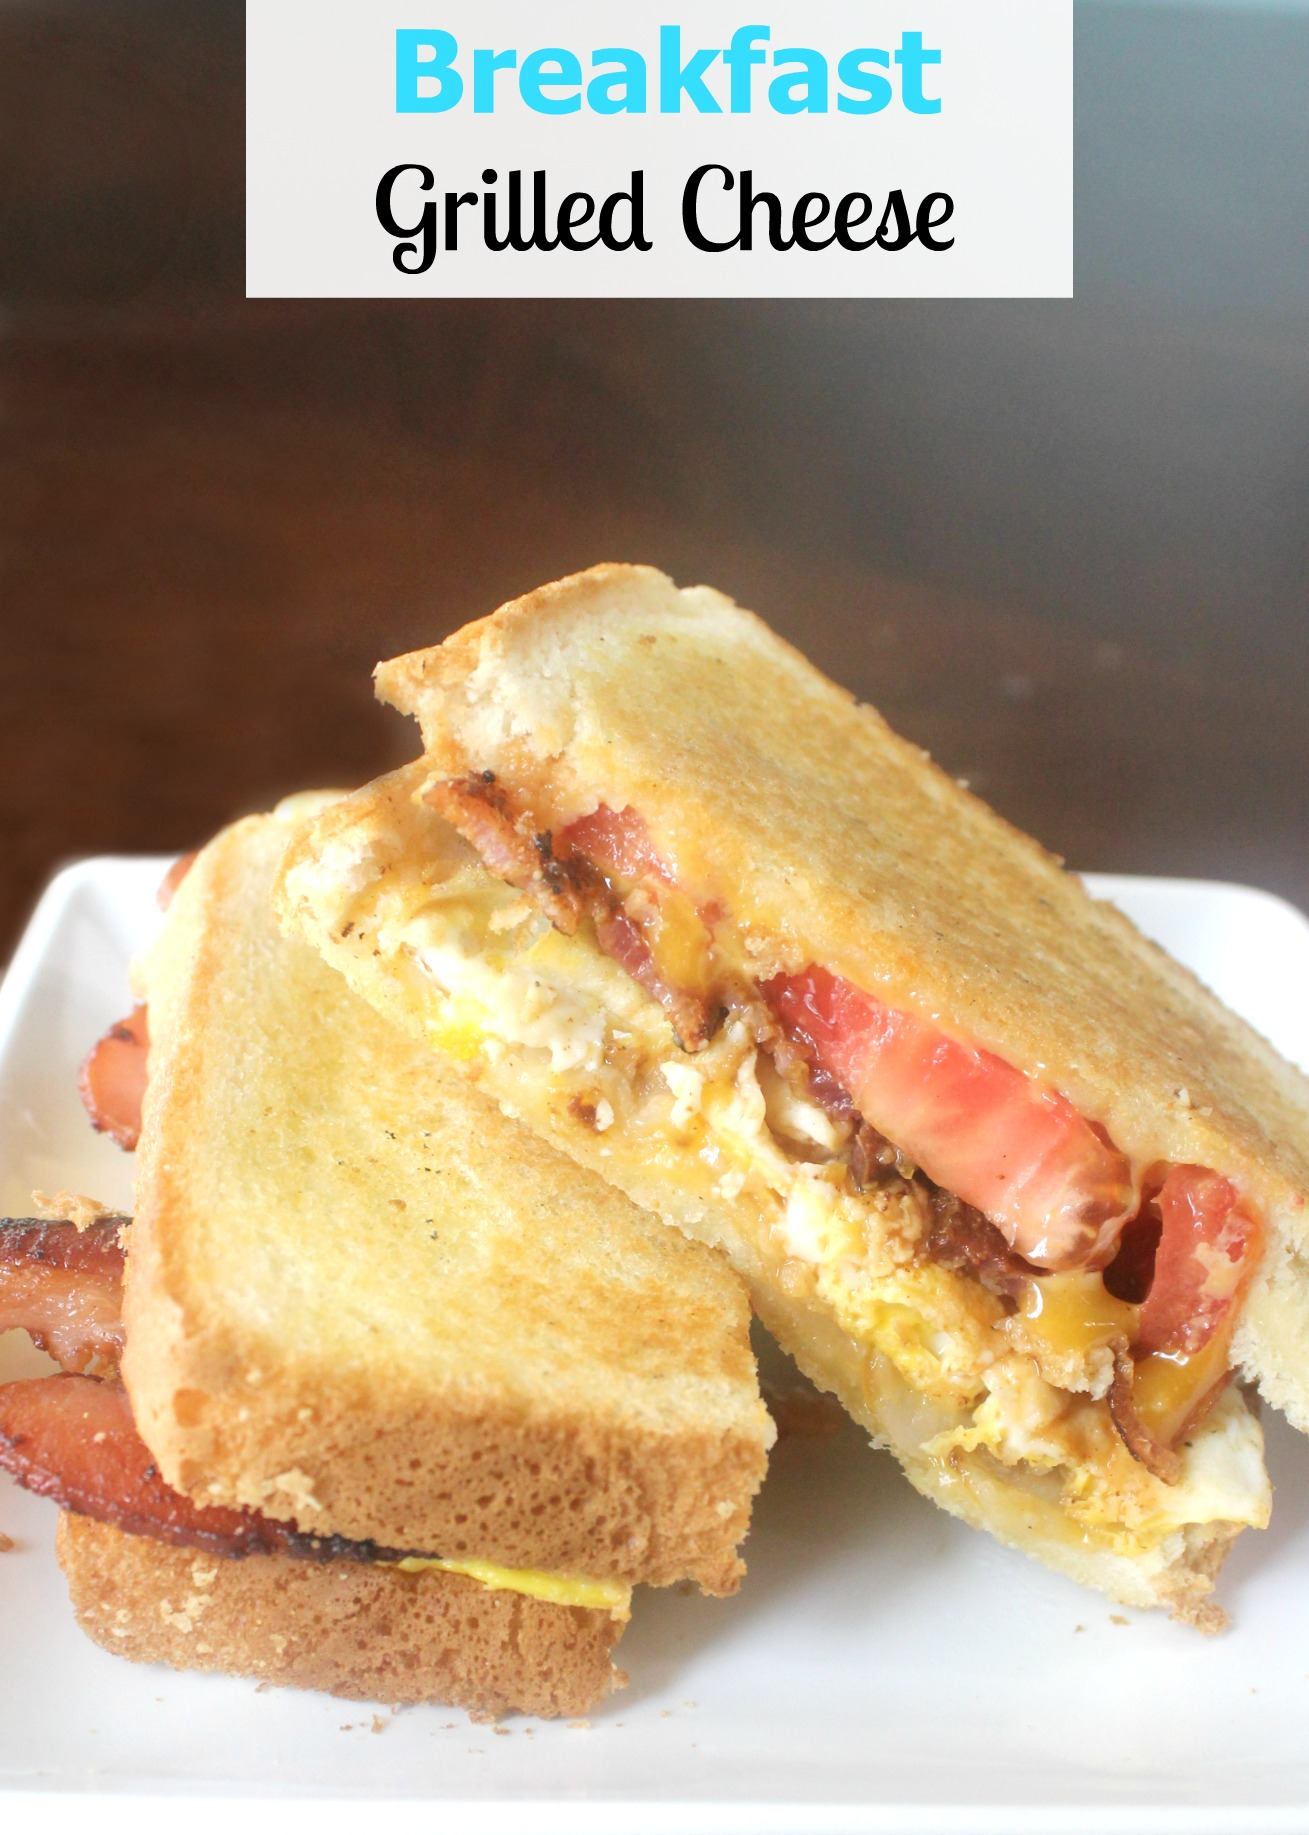 Delicious Breakfast Grilled Cheese with Farmland Bacon